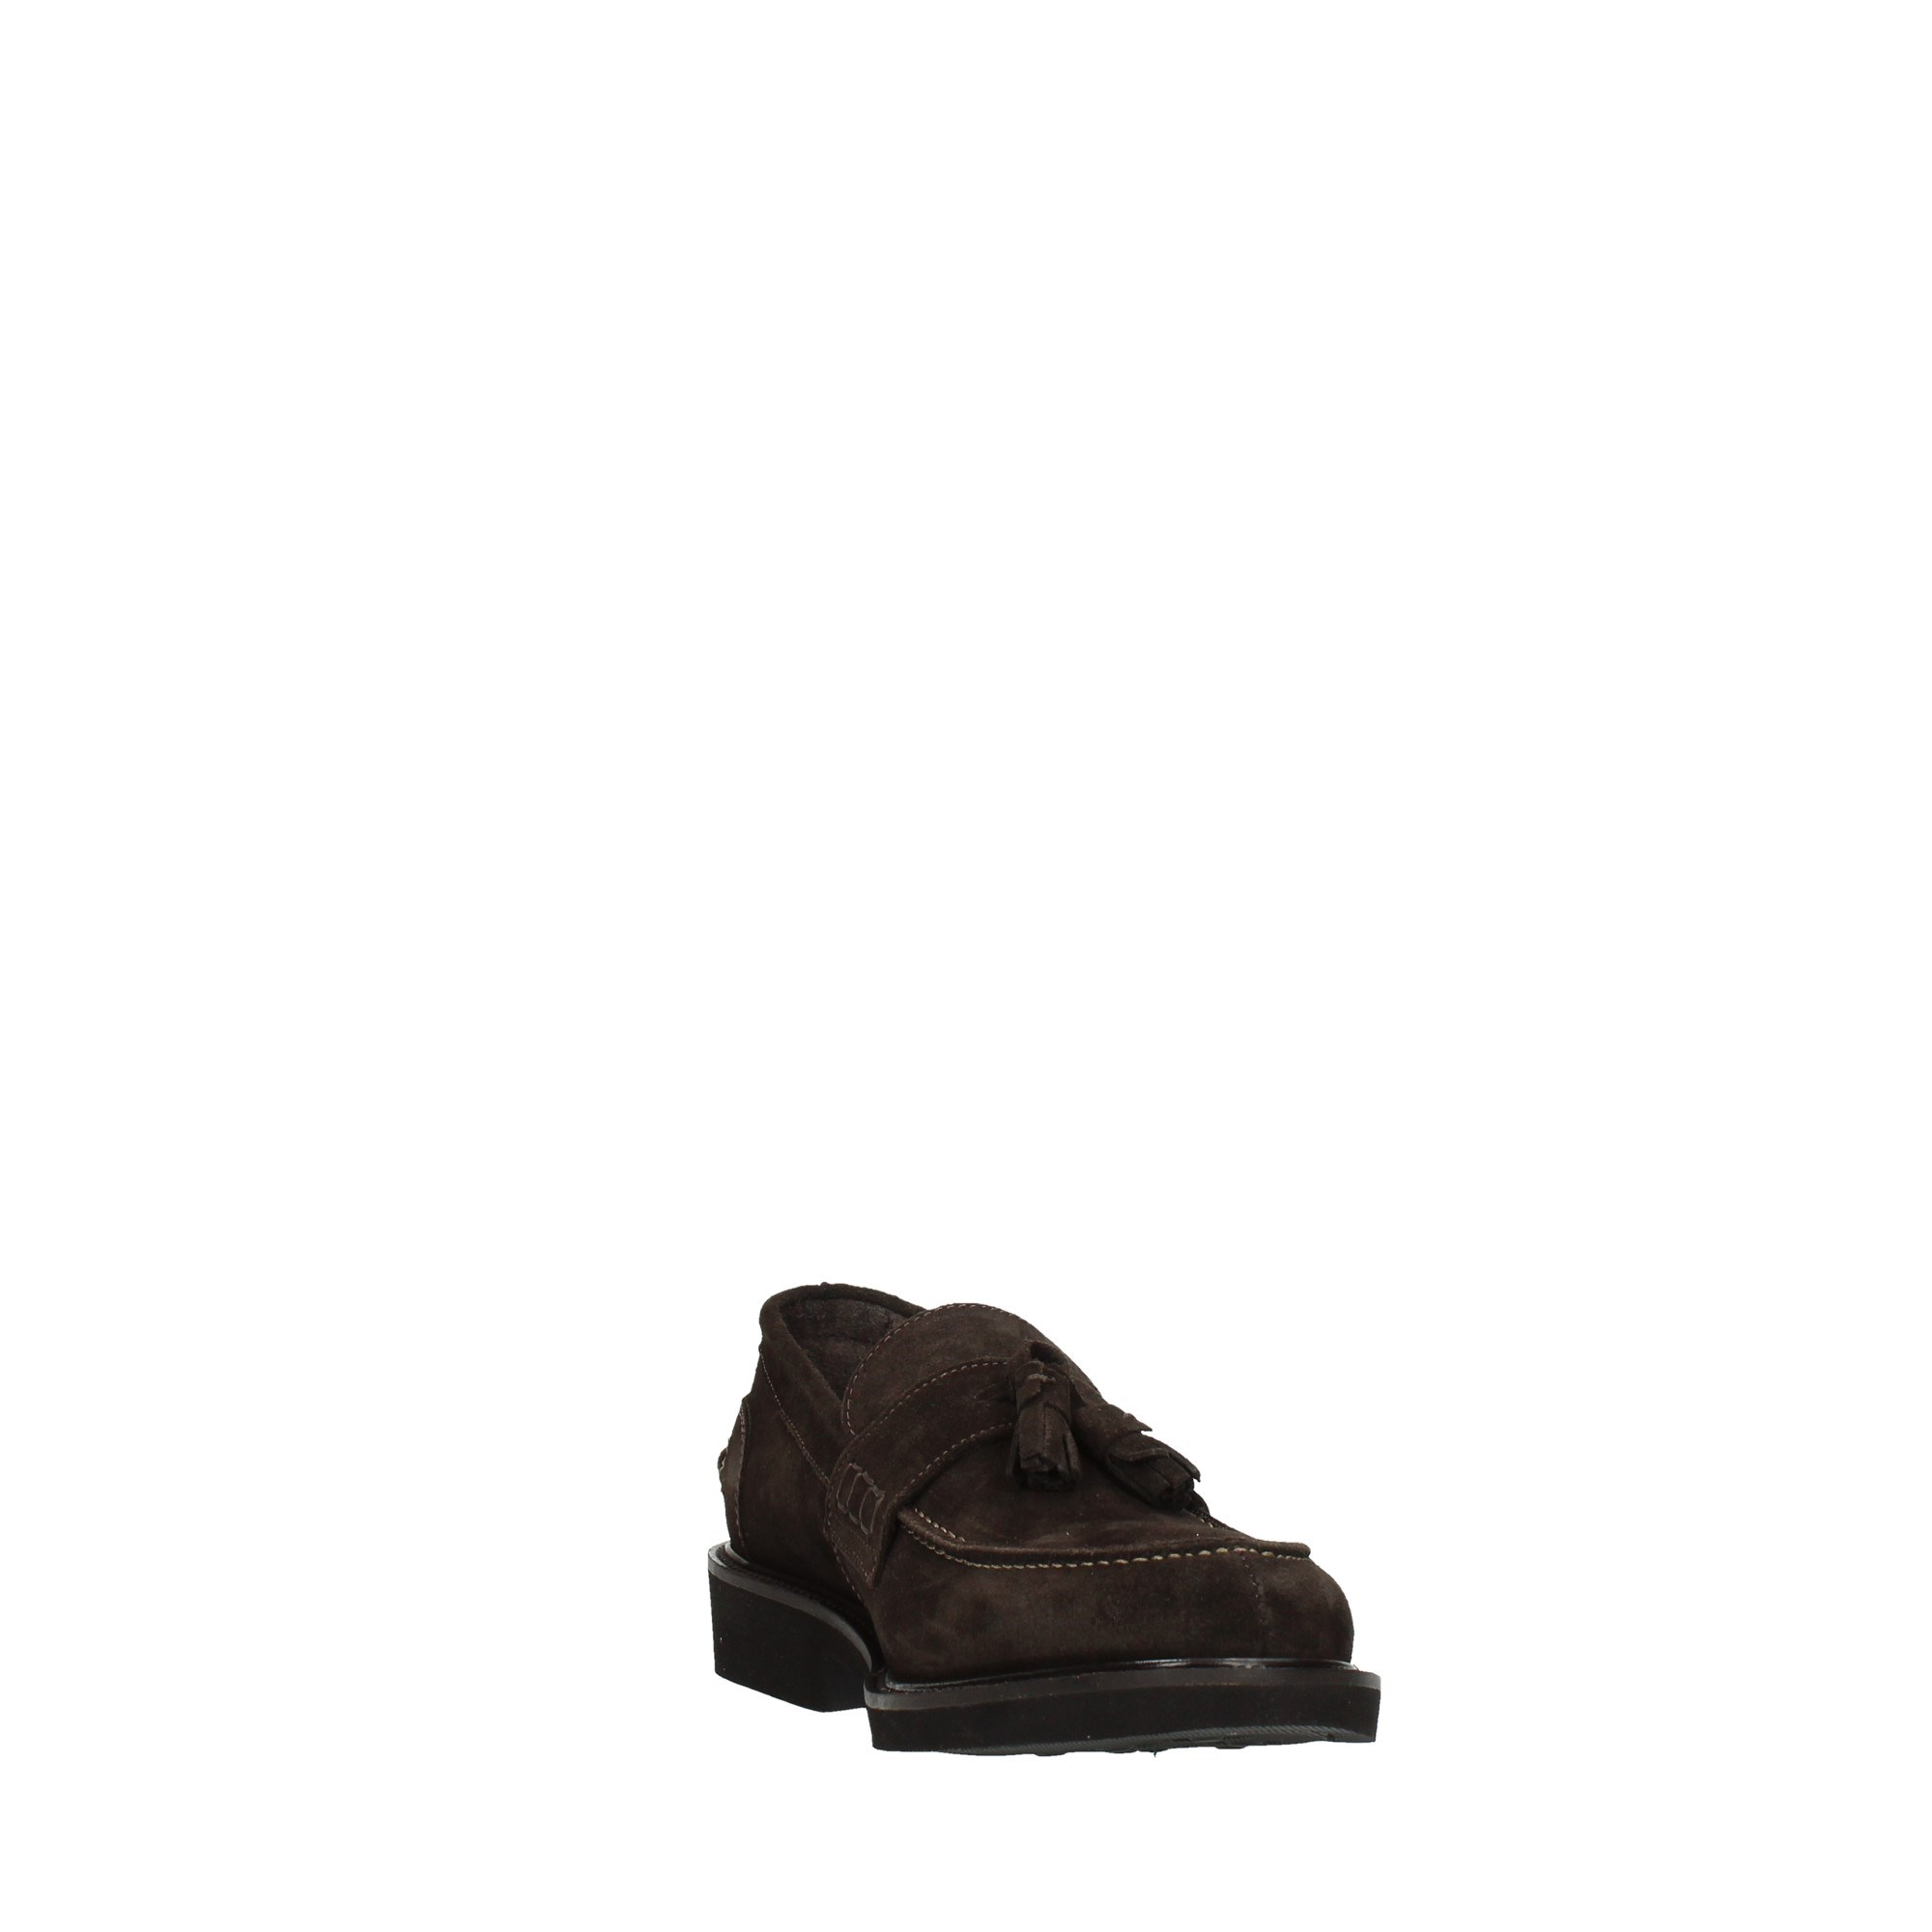 Mec's Shoes Man Moccasins And Slippers Brown AA002